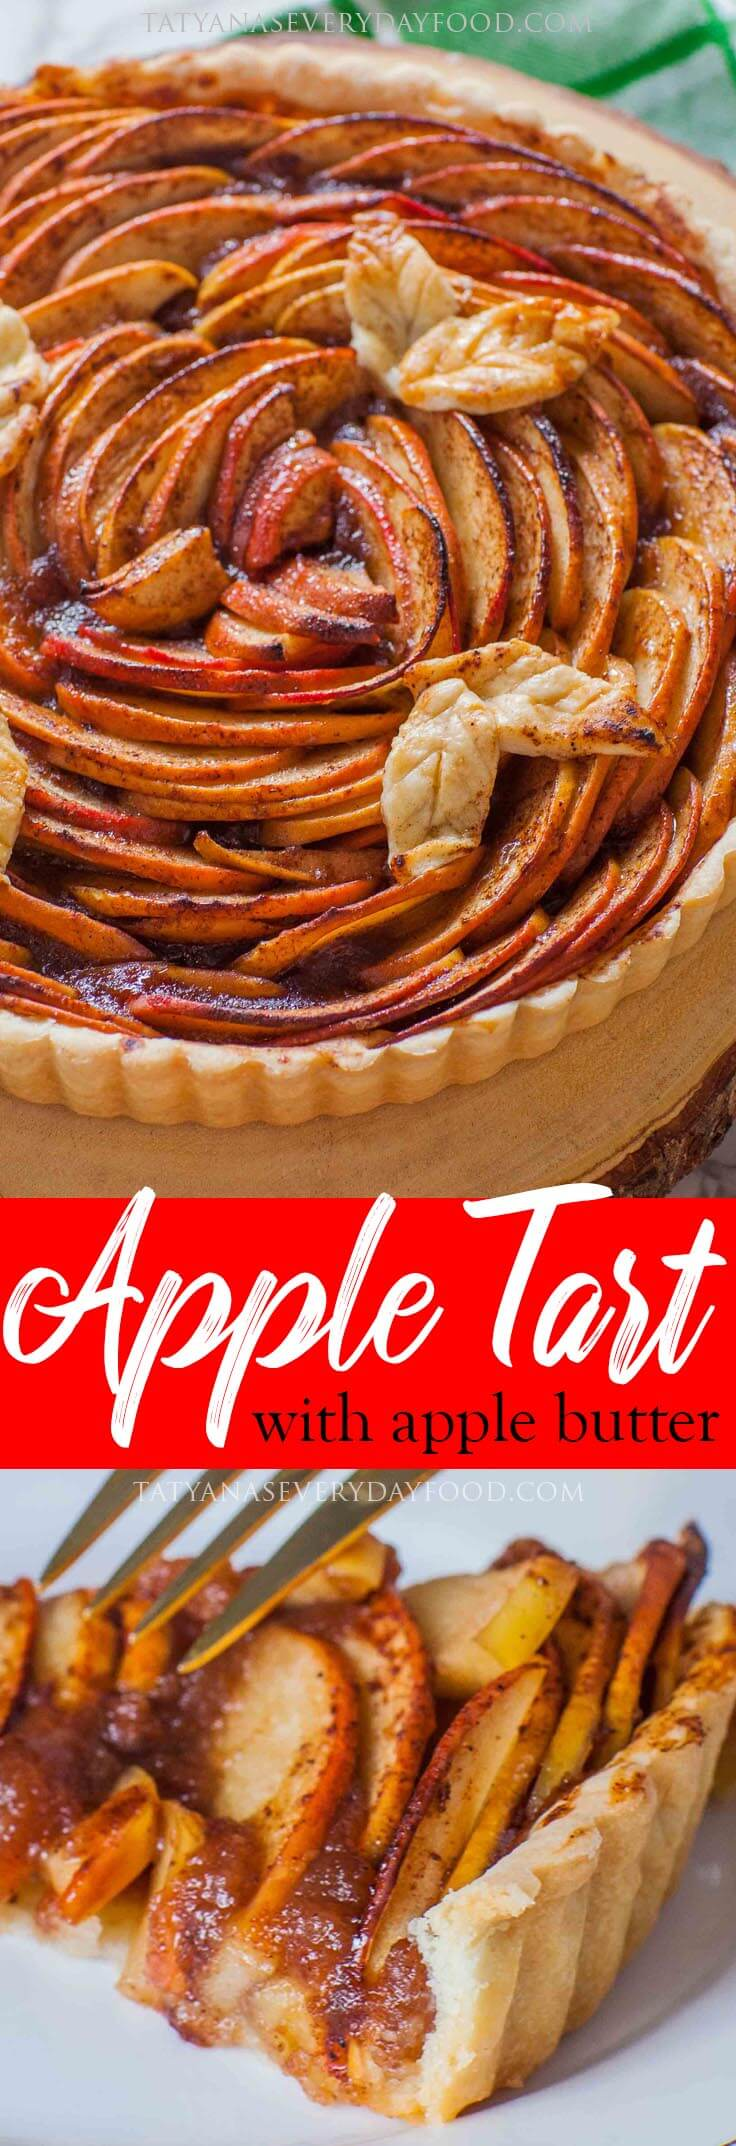 The Best Apple Tart Recipe with video